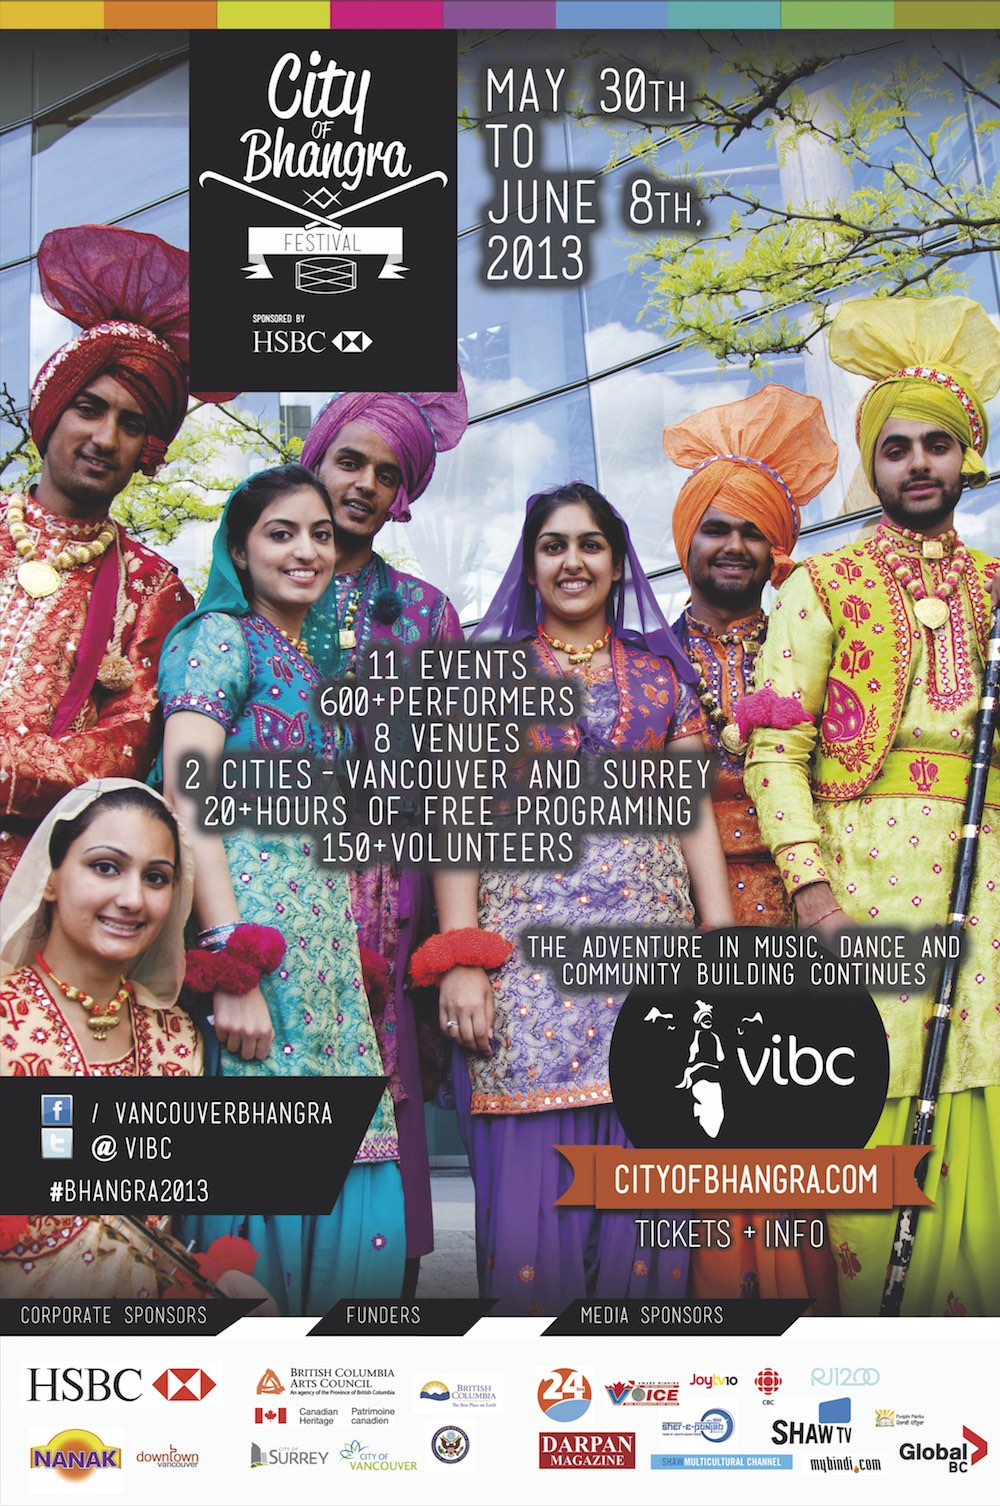 vibc_city_of_bhangra_2013_poster.jpg